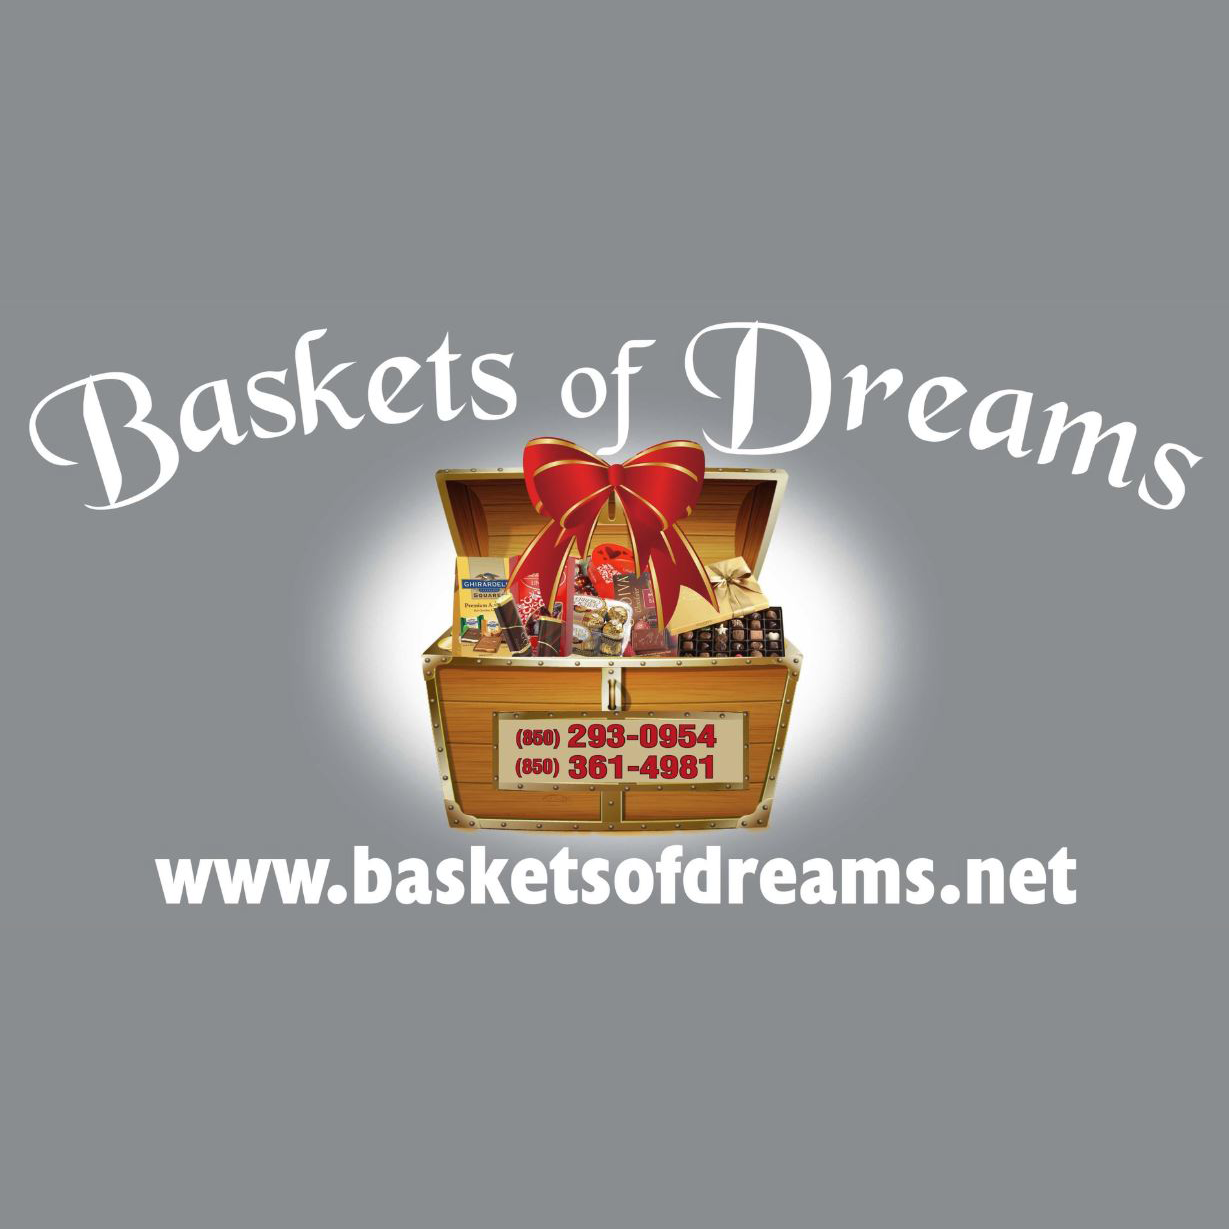 Baskets of Dreams LLC